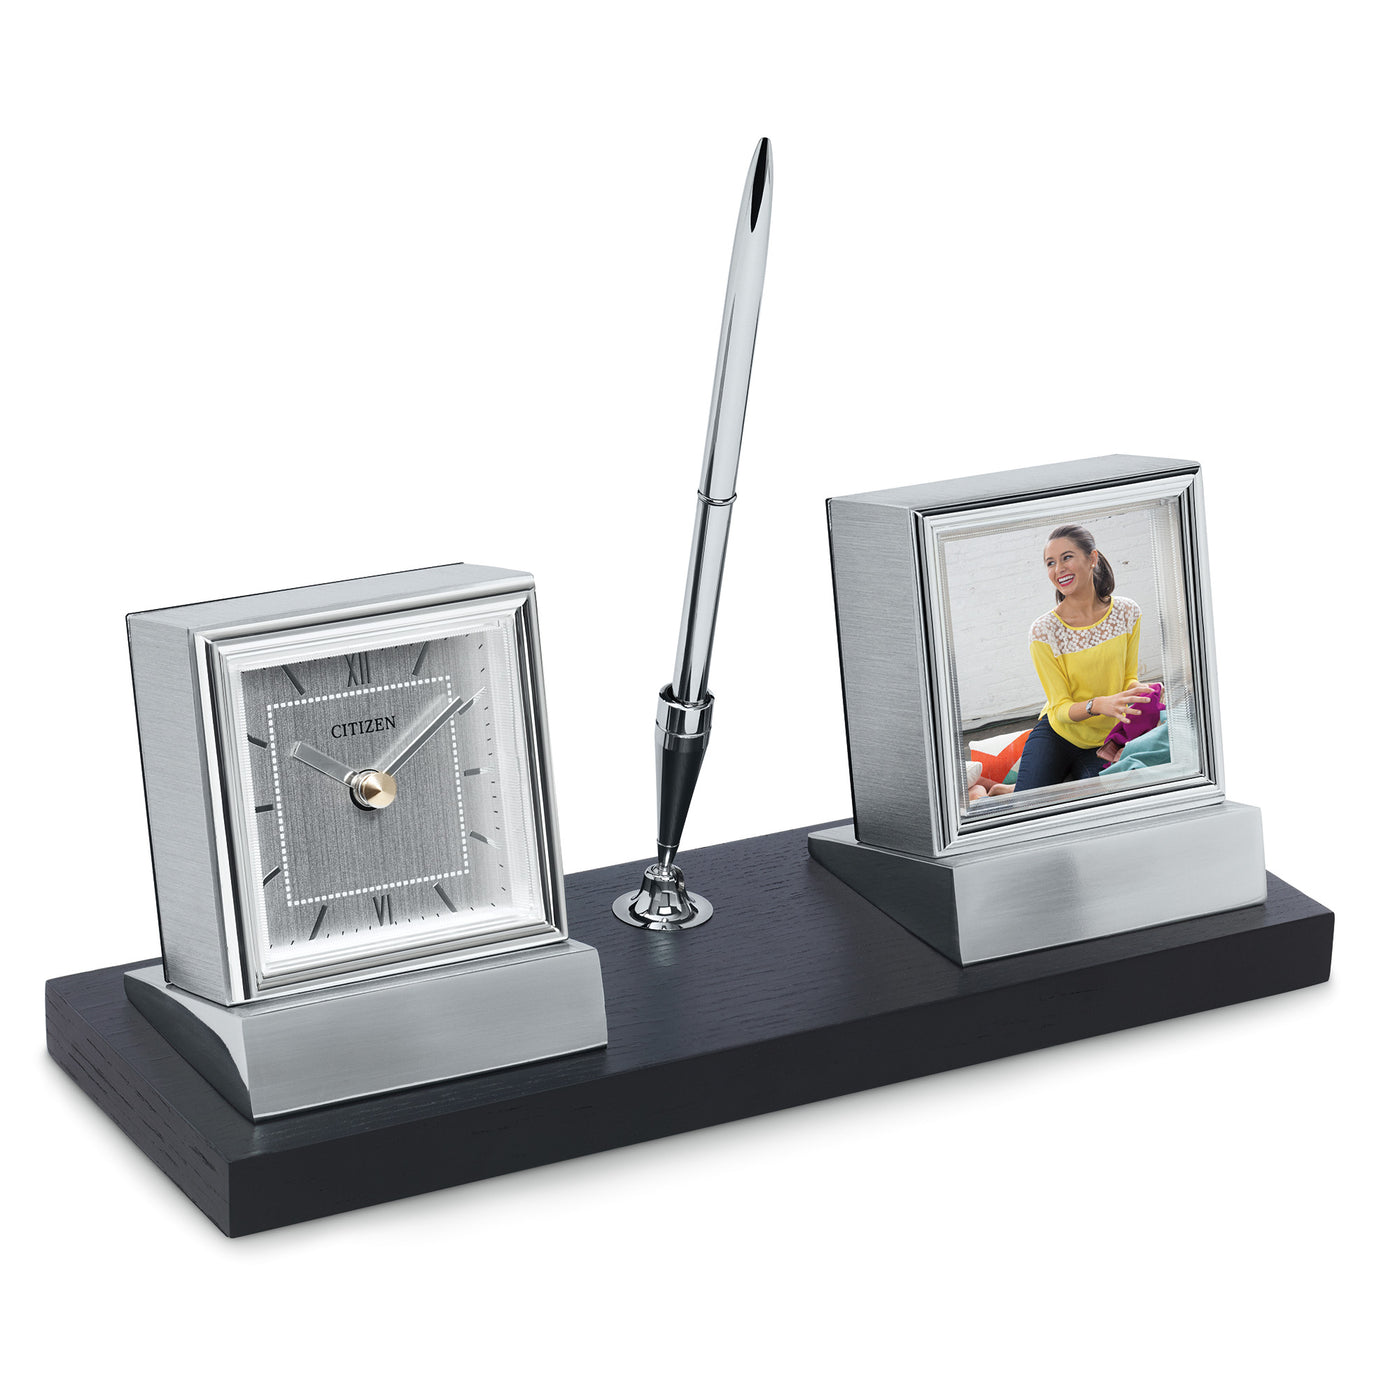 Citizen Executive Suite Wood Base Desk Clock W/ Photo Frame & Pen CC1001